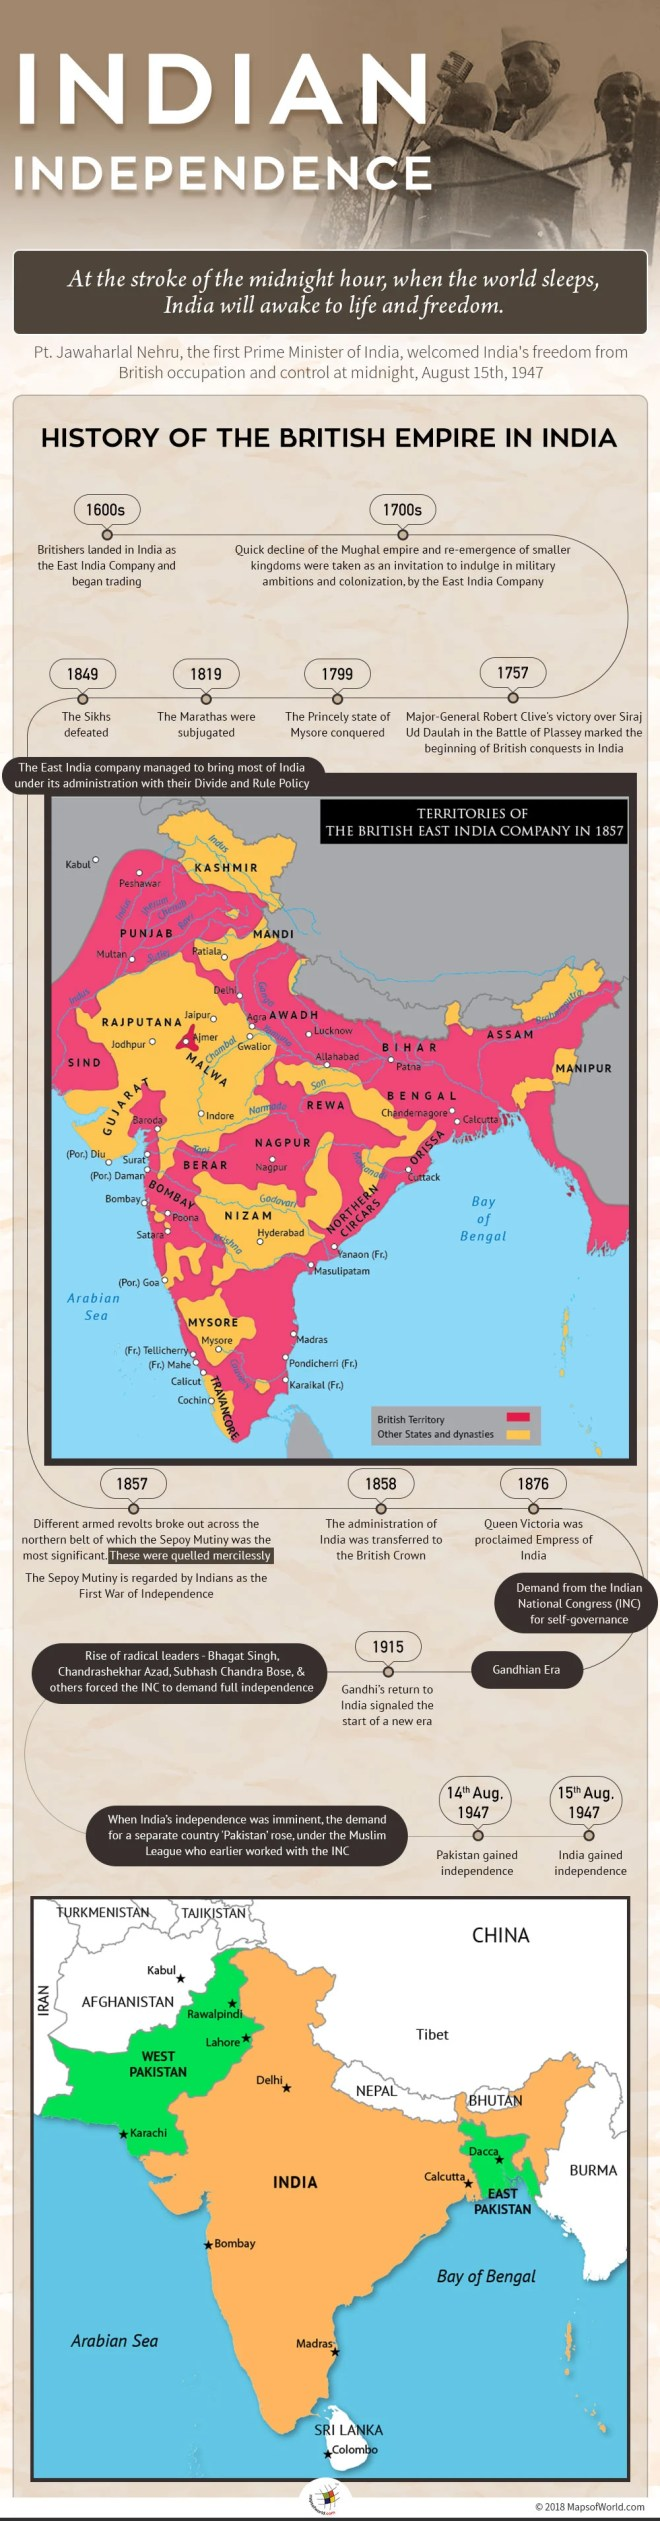 Infographic depicting the journey of Indian Independence